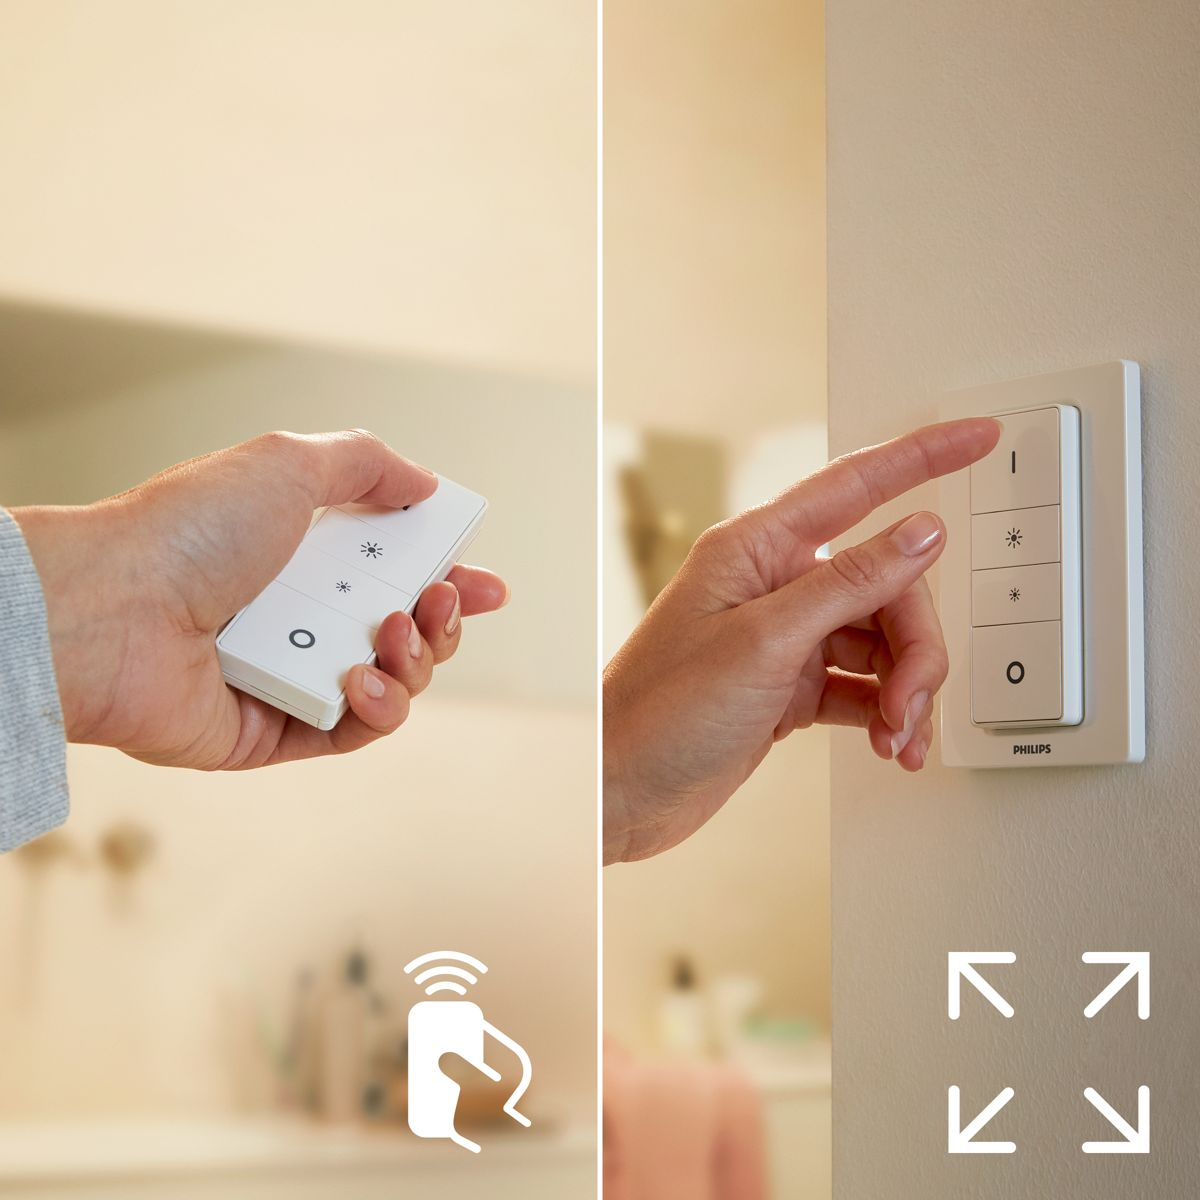 Easy and wireless control with the dimmer switch